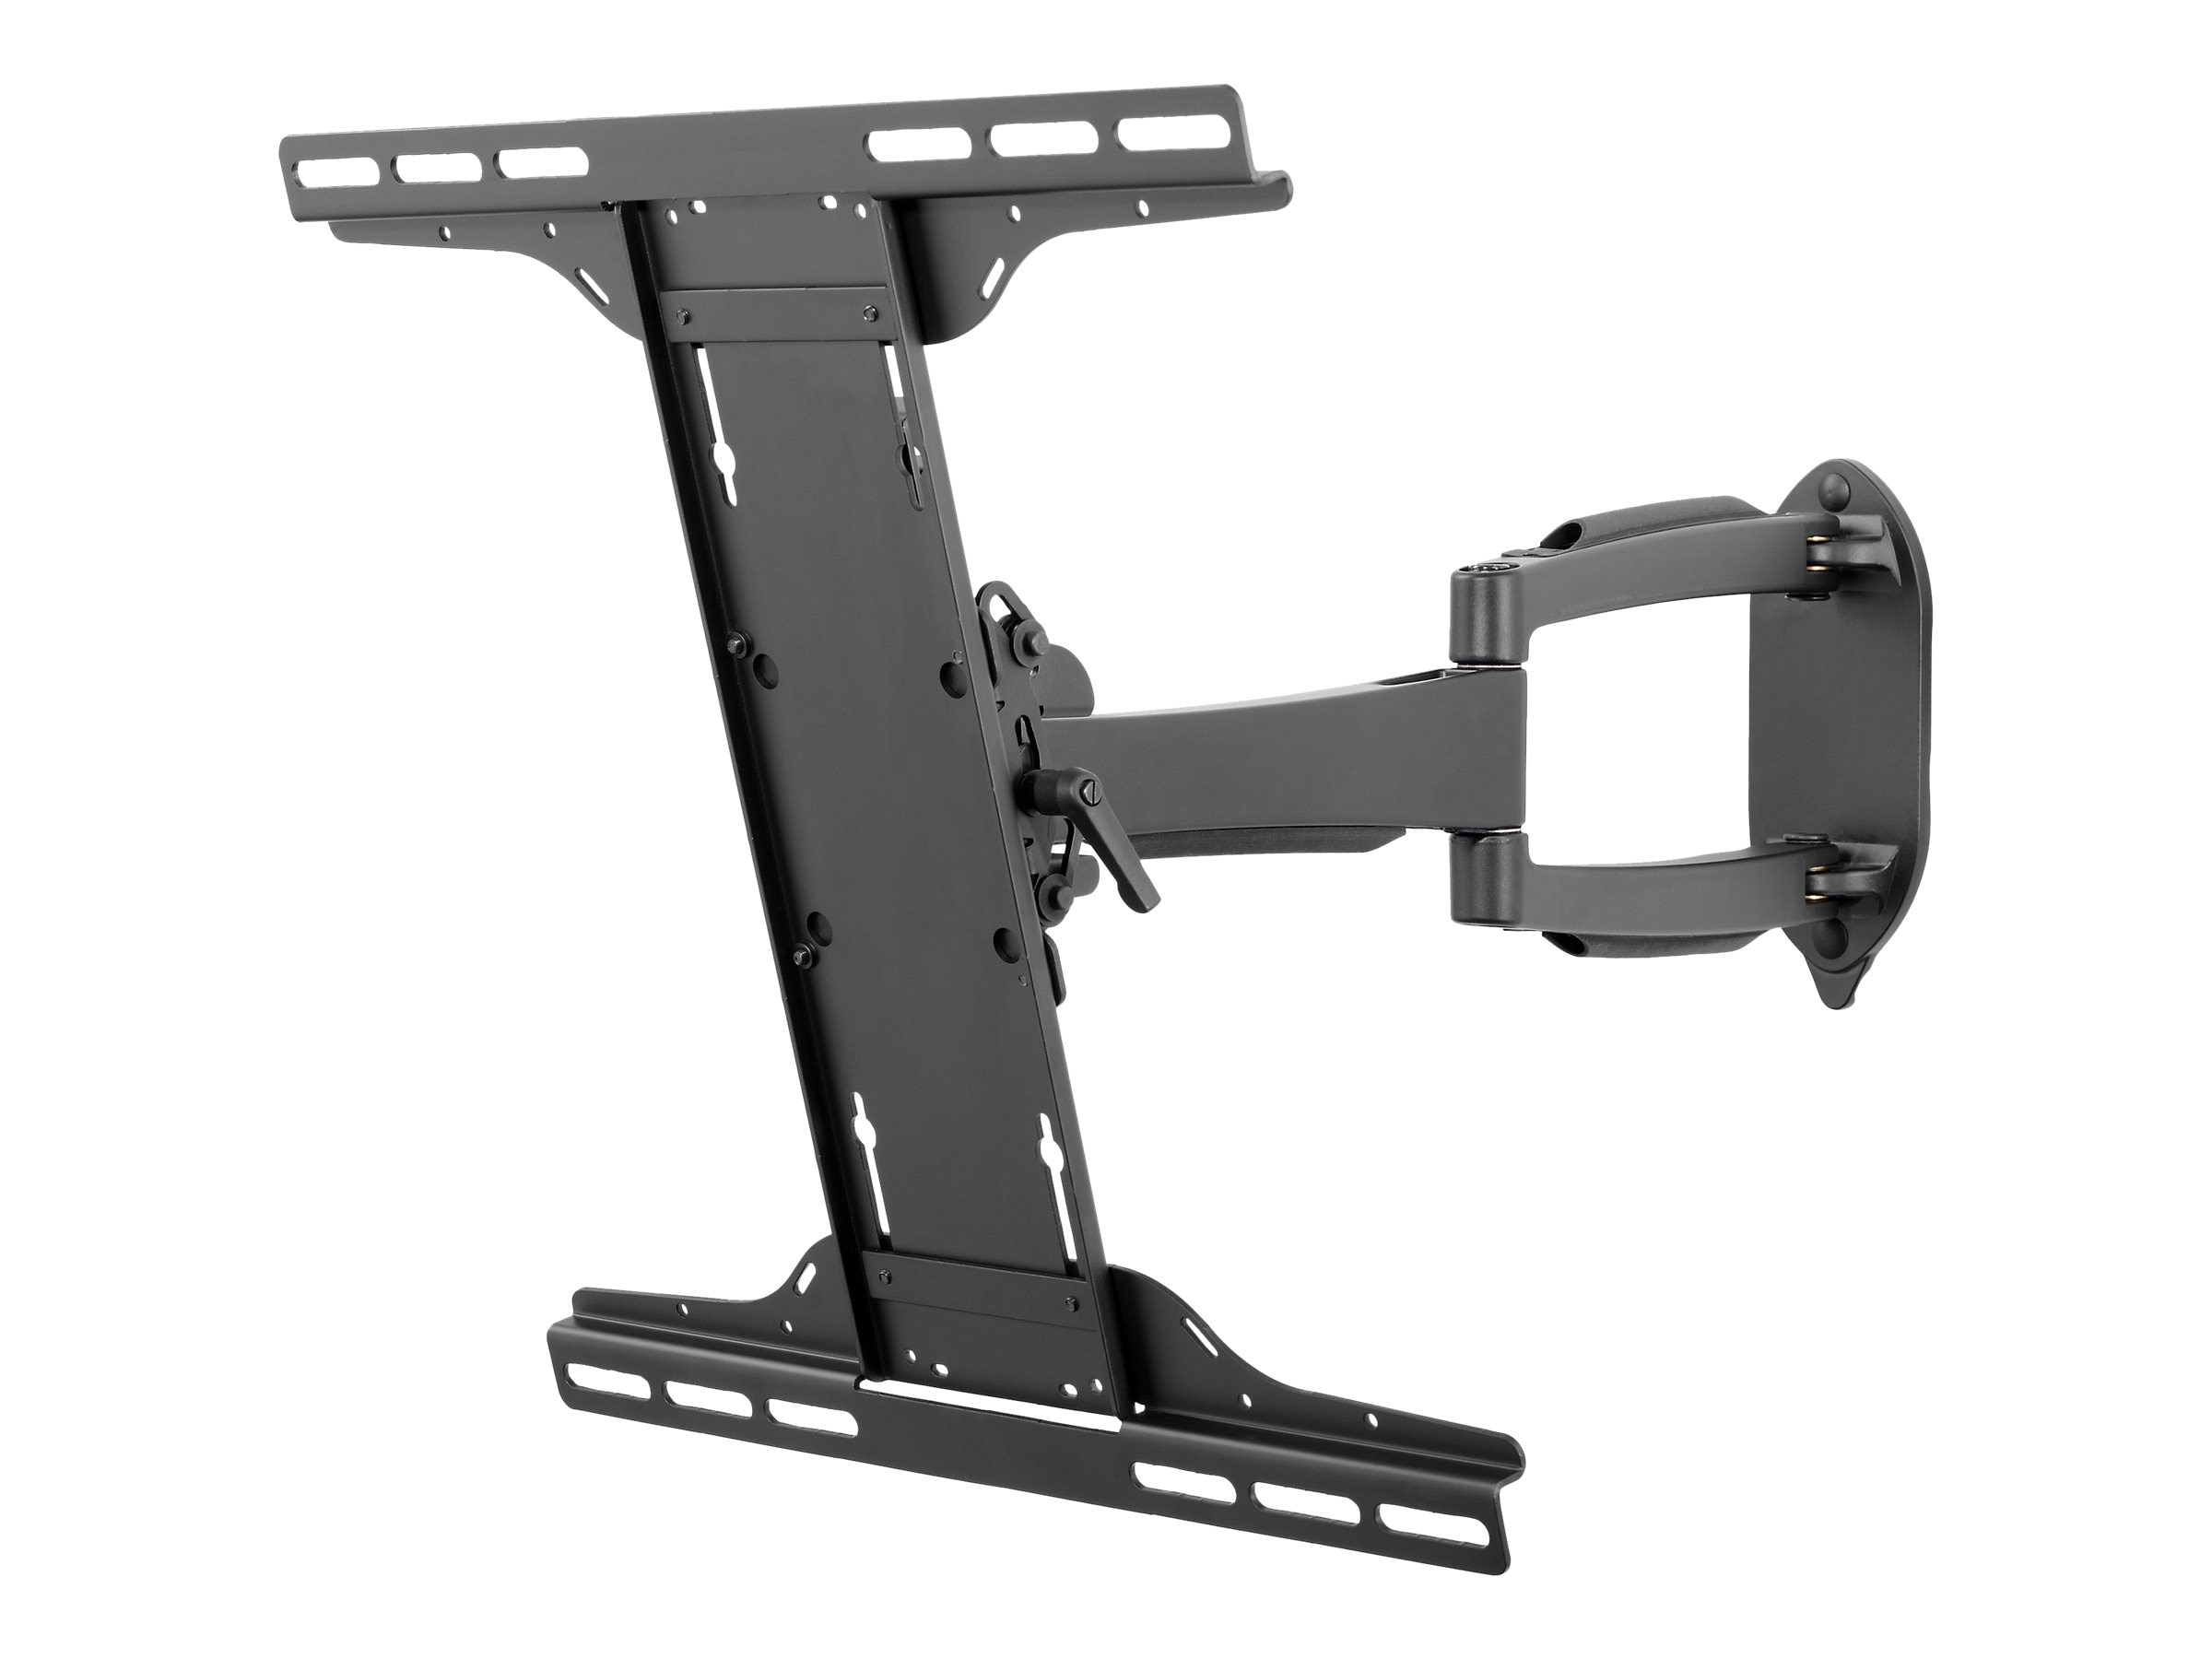 Peerless SmartMount Articulating Wall Arm for 32-50 Displays, SA746PU, 11921745, Stands & Mounts - AV